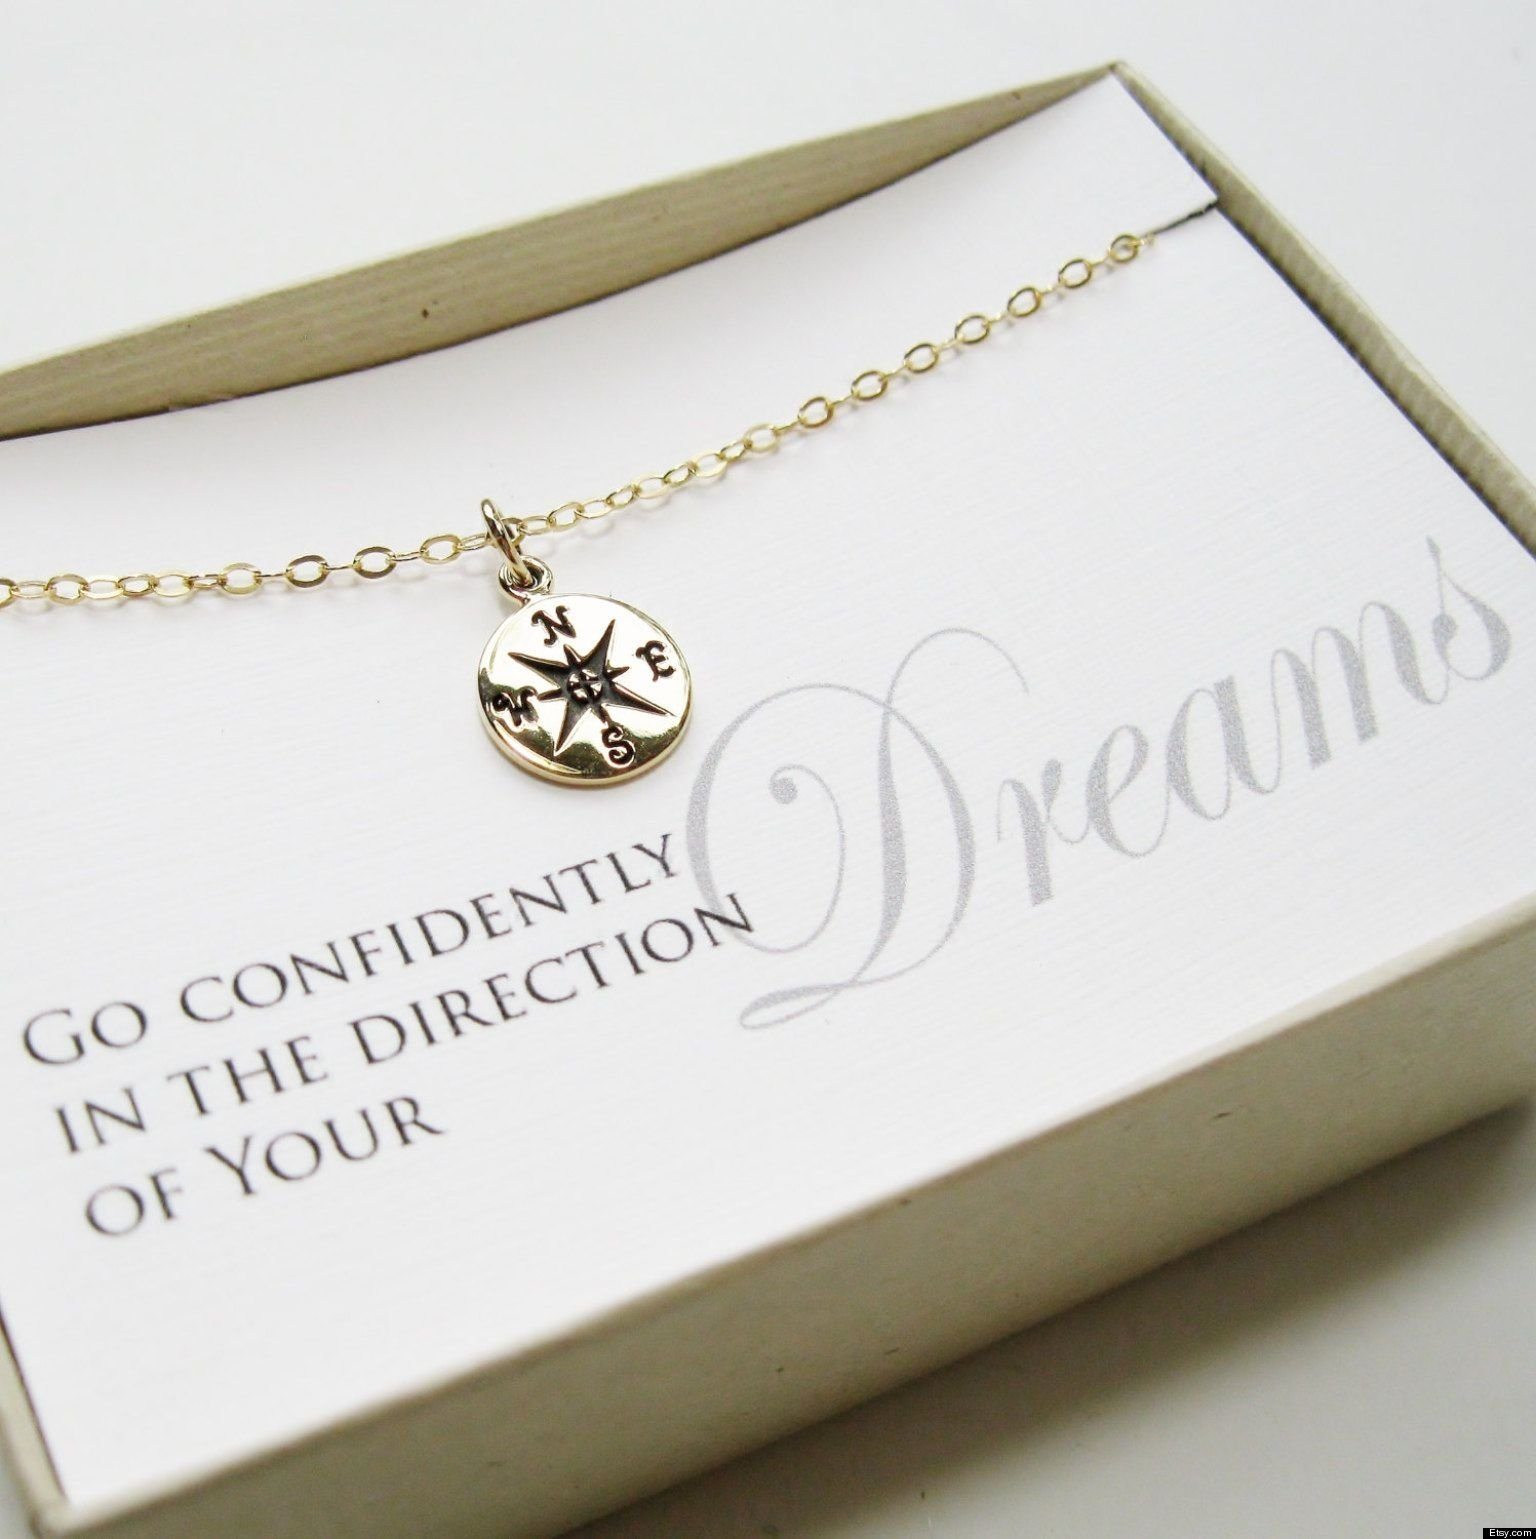 10 Awesome Graduation Gift Ideas For Girls 15 unforgettable grad gift ideas grad gifts gift and graduation gifts 11 2020